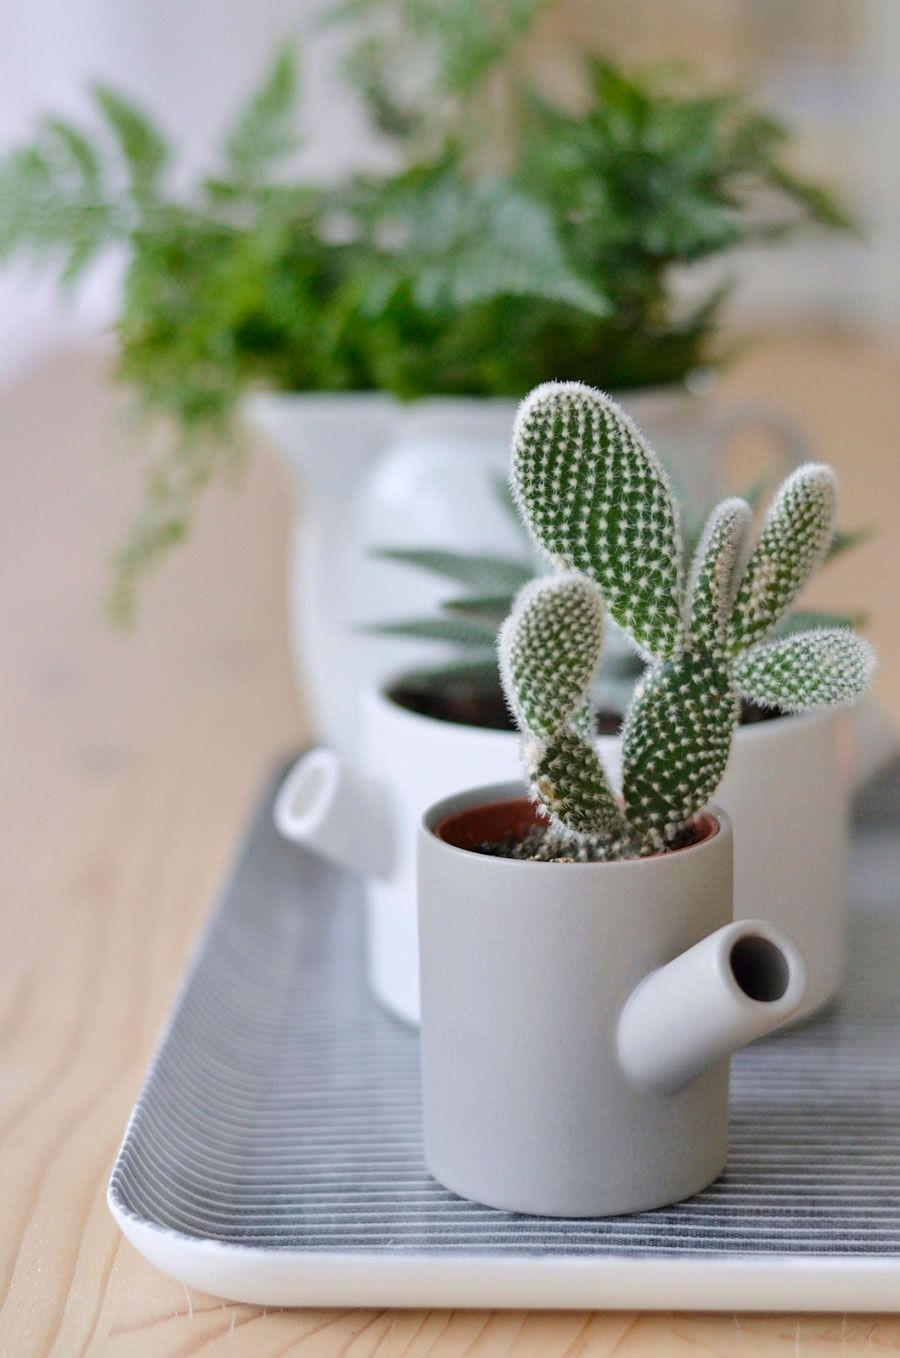 Cacti at home: 60 inspirations to decorate with the 21st floor